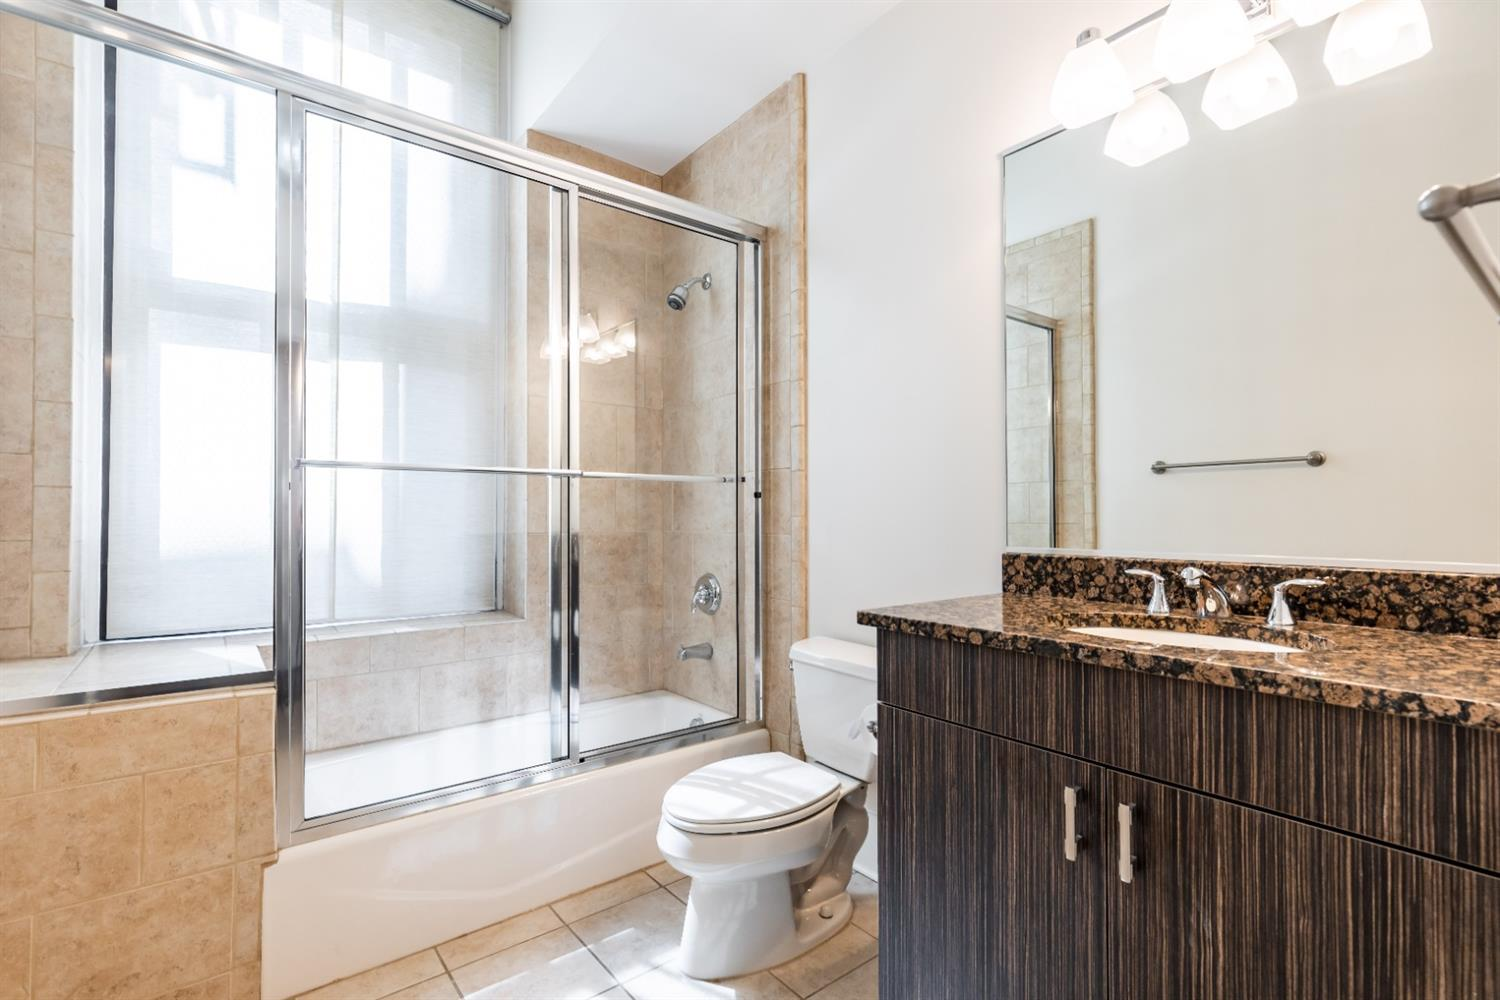 Guest bath with spacious full tub. Beautiful zebra wood cabinetry with granite counters.